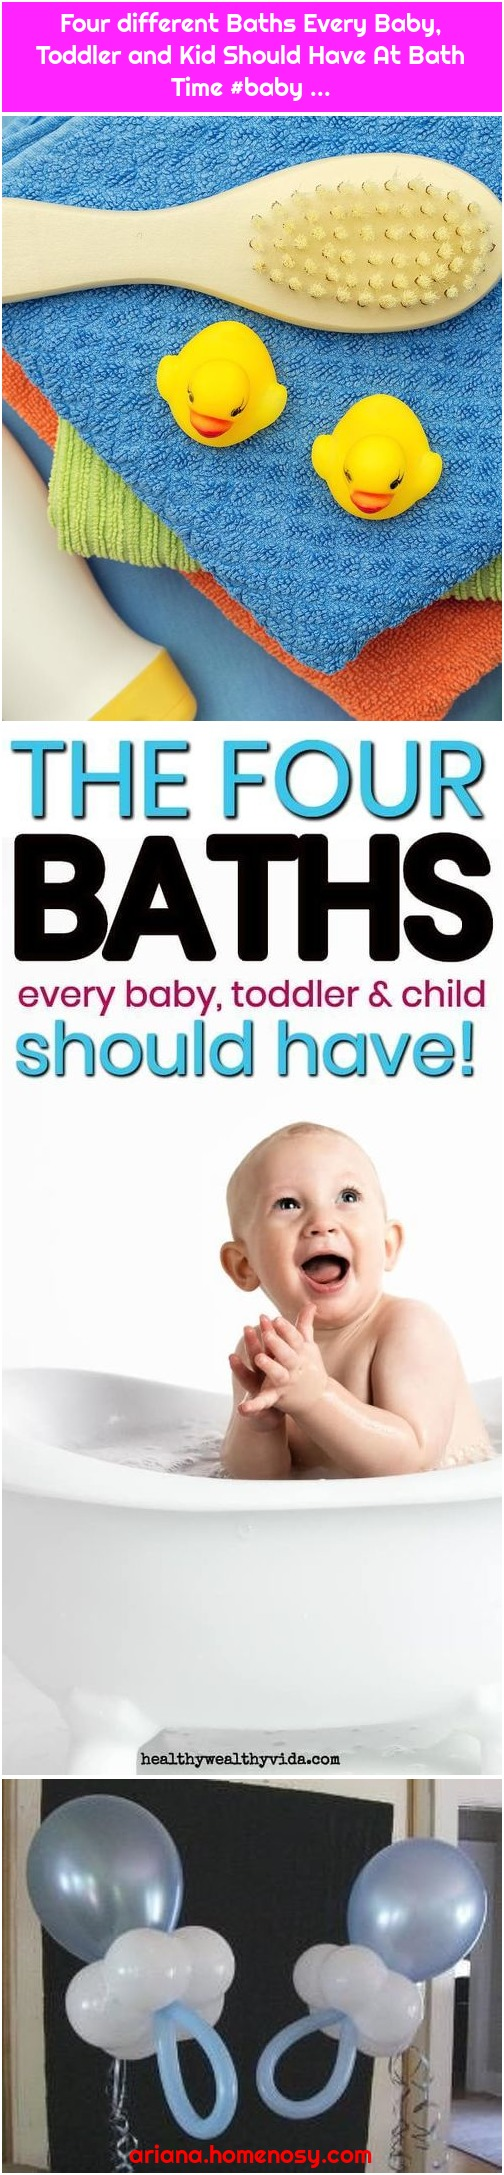 Four different Baths Every Baby, Toddler and Kid Should Have At Bath Time #baby ...